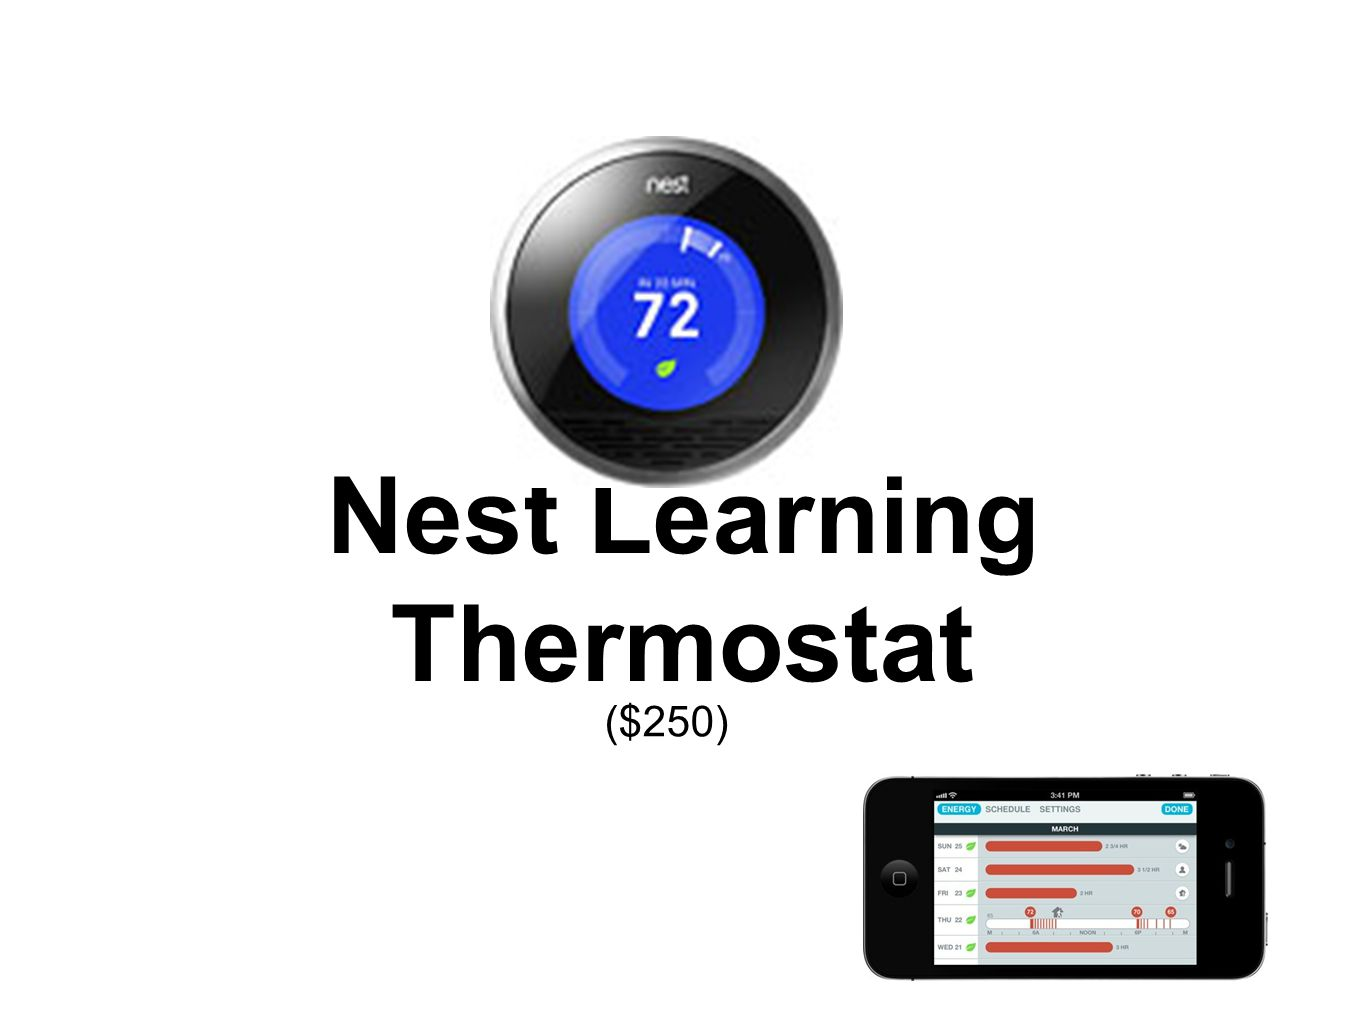 ($250) Nest Learning Thermostat